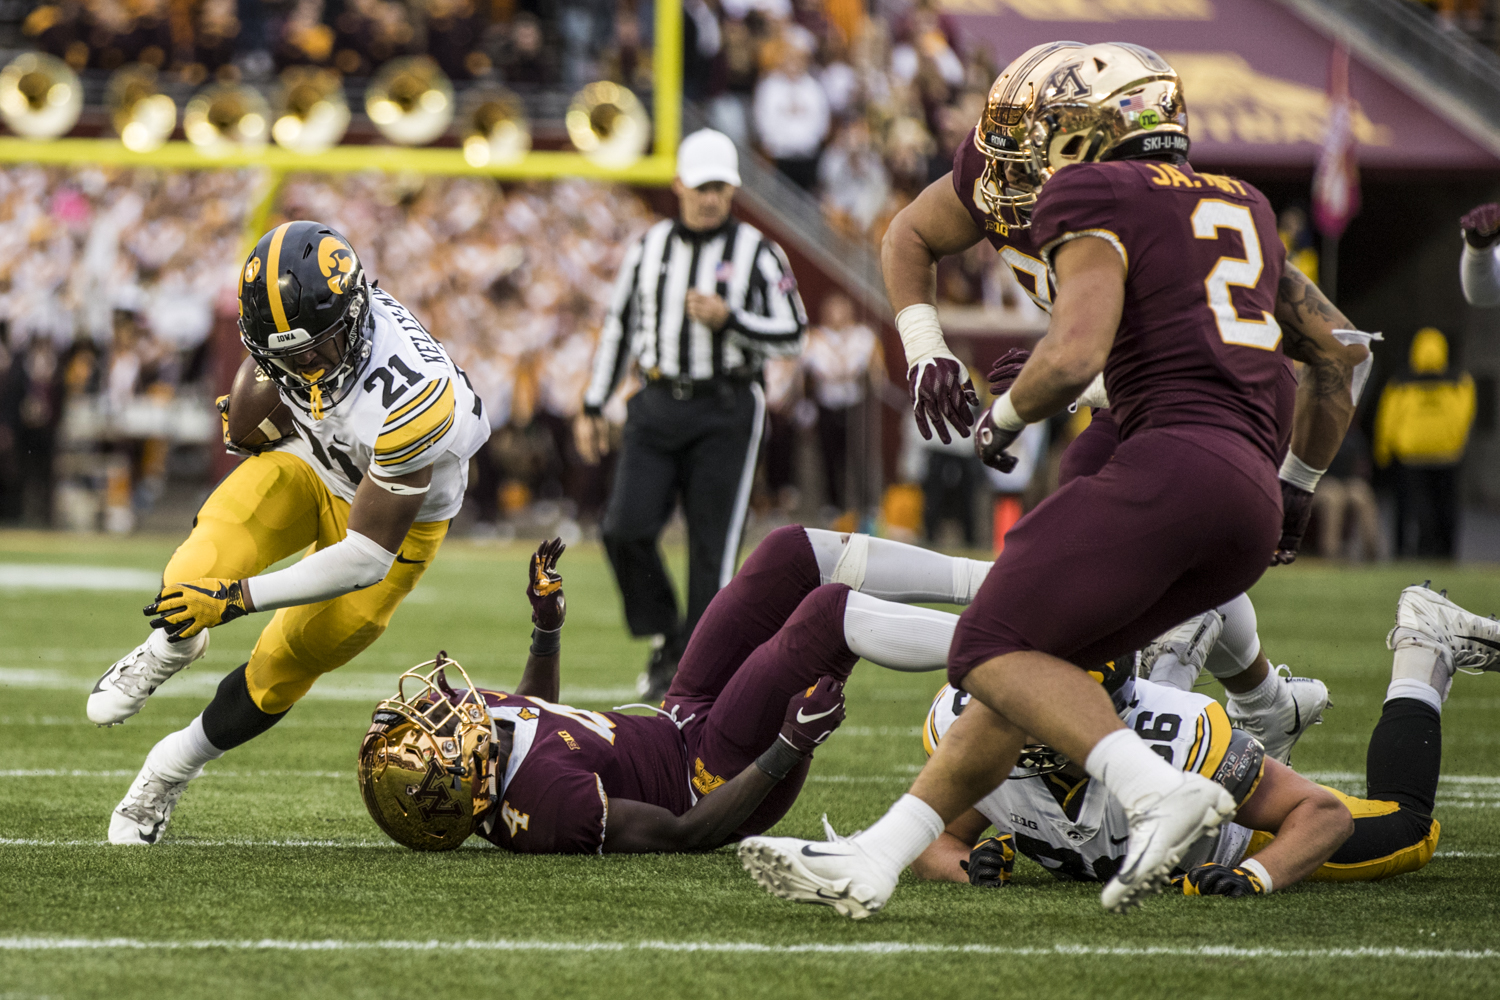 Iowa+running+back+Ivory+Kelly-Martin+carries+the+ball+during+Iowa%27s+game+against+Minnesota+at+TCF+Bank+Stadium+on+Saturday%2C+October+6%2C+2018.+The+Hawkeyes+defeated+the+Golden+Gophers+48-31.